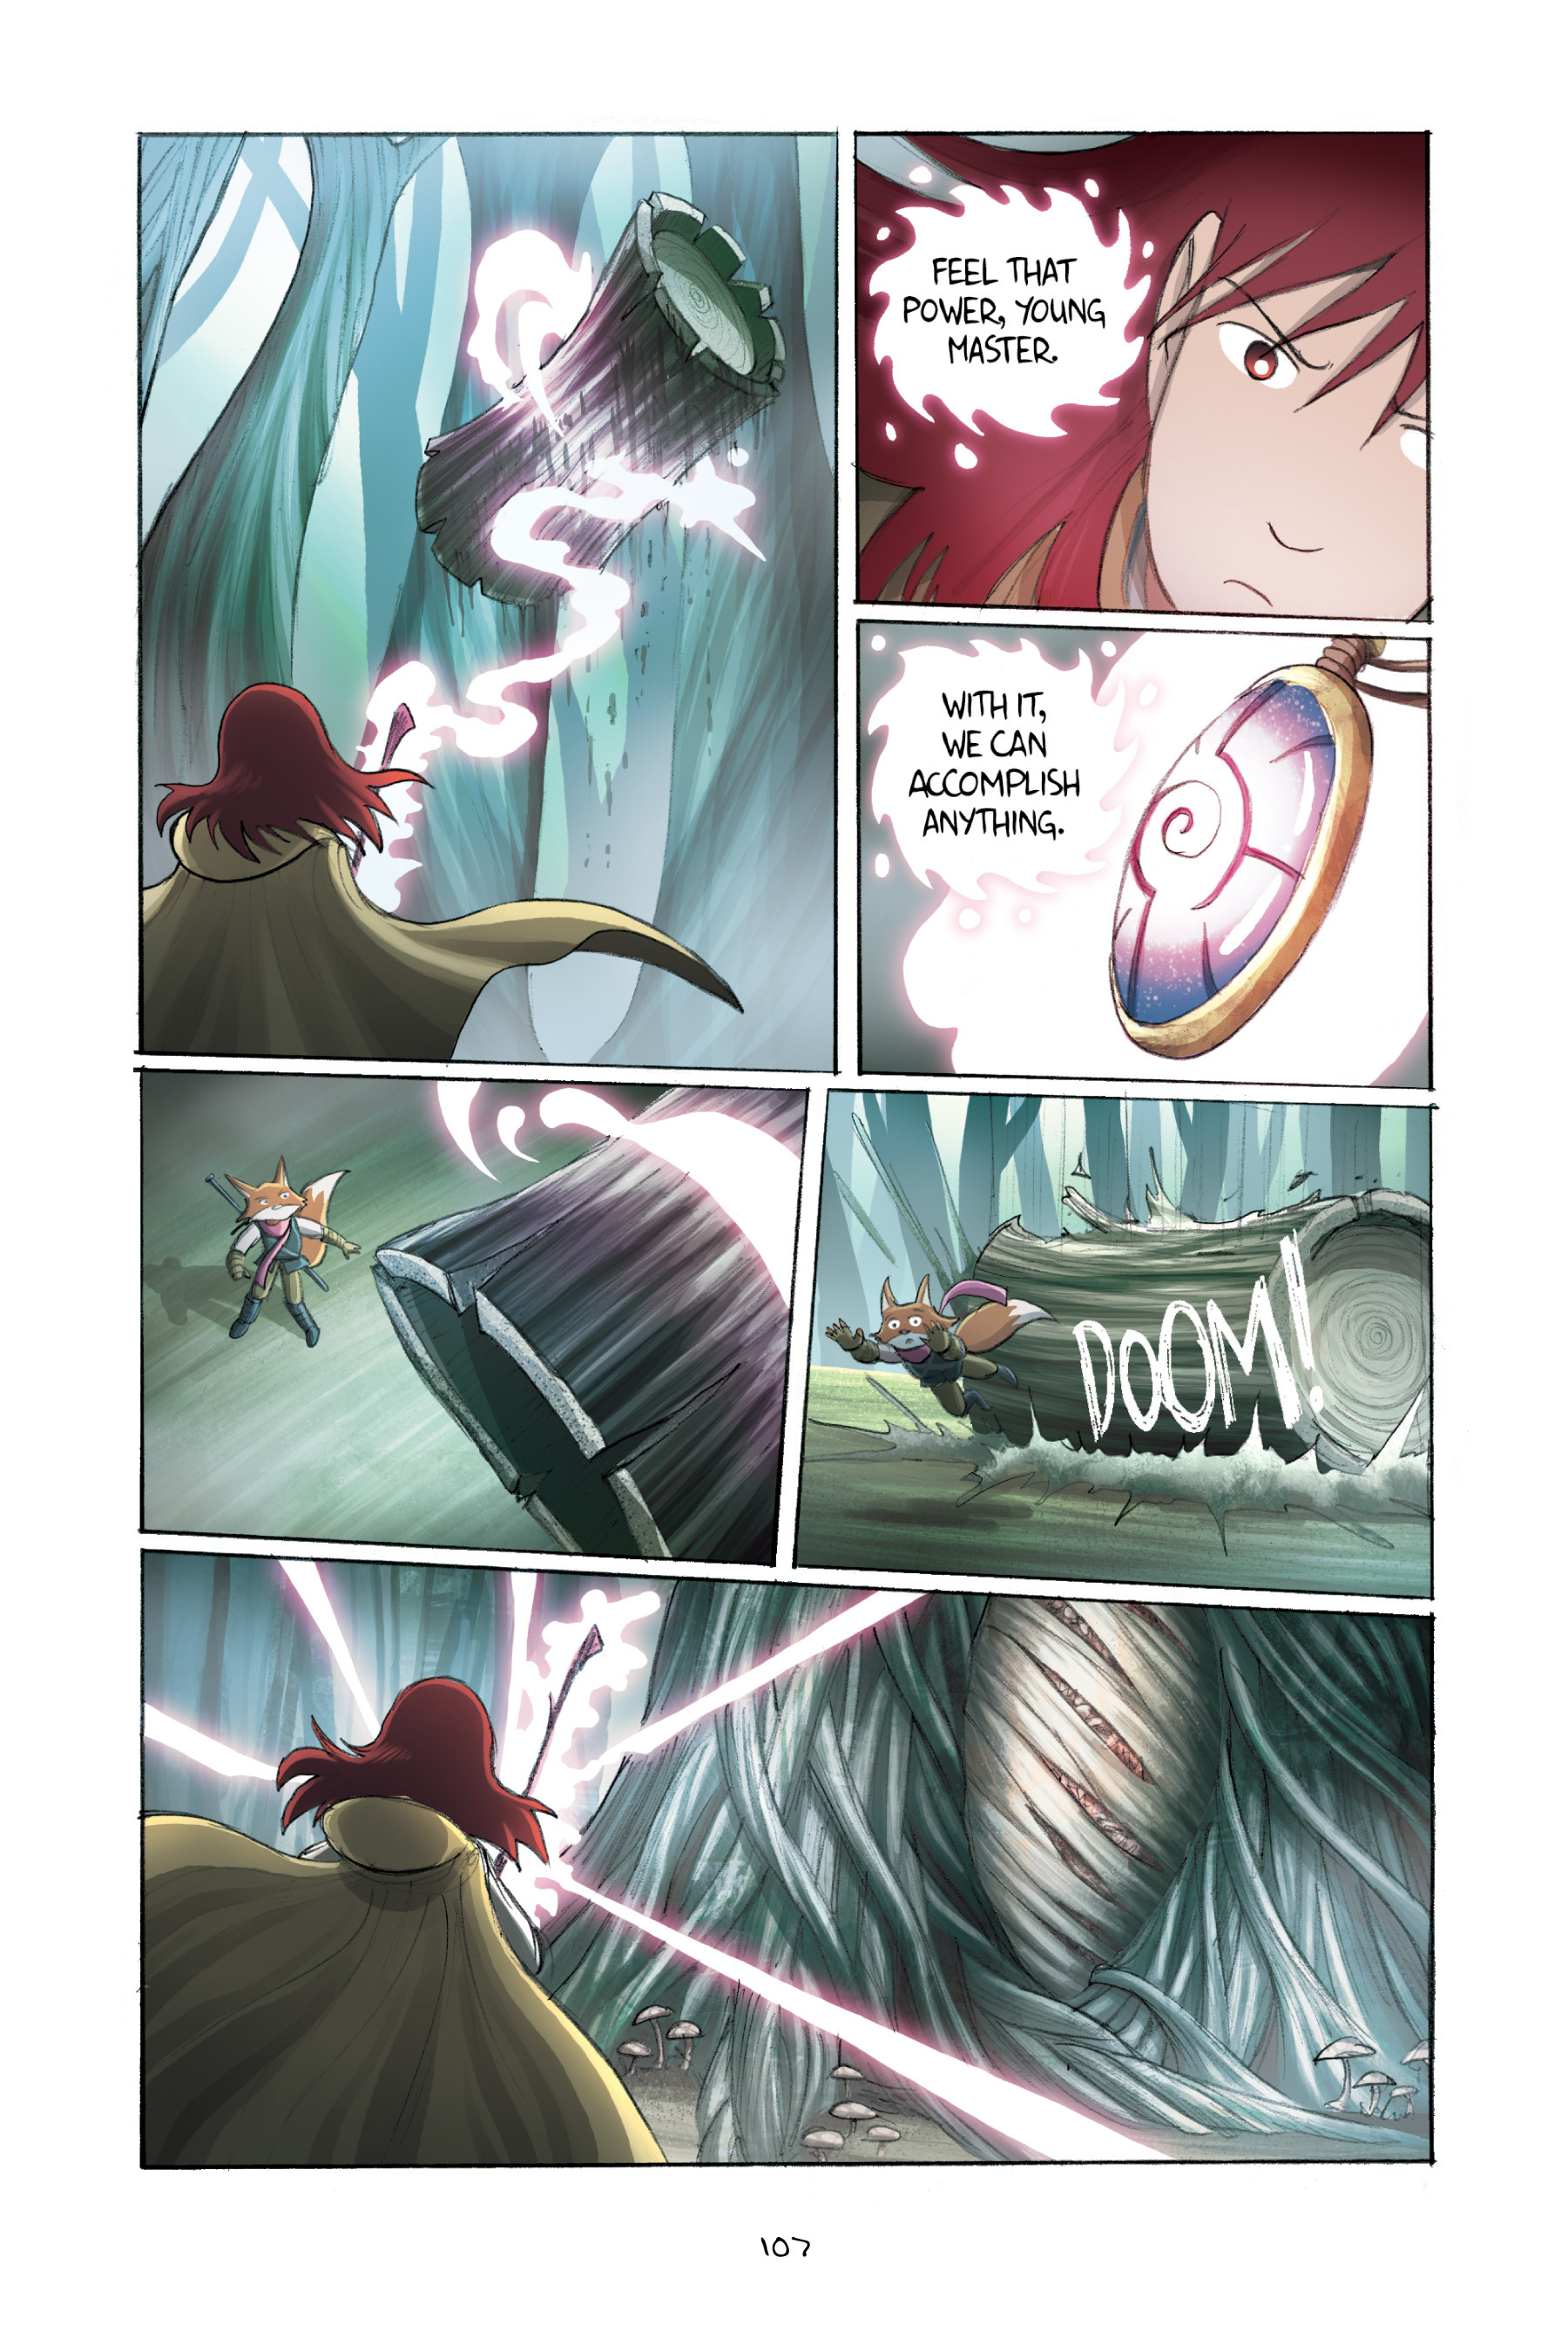 Read online Amulet comic -  Issue #2 - 107